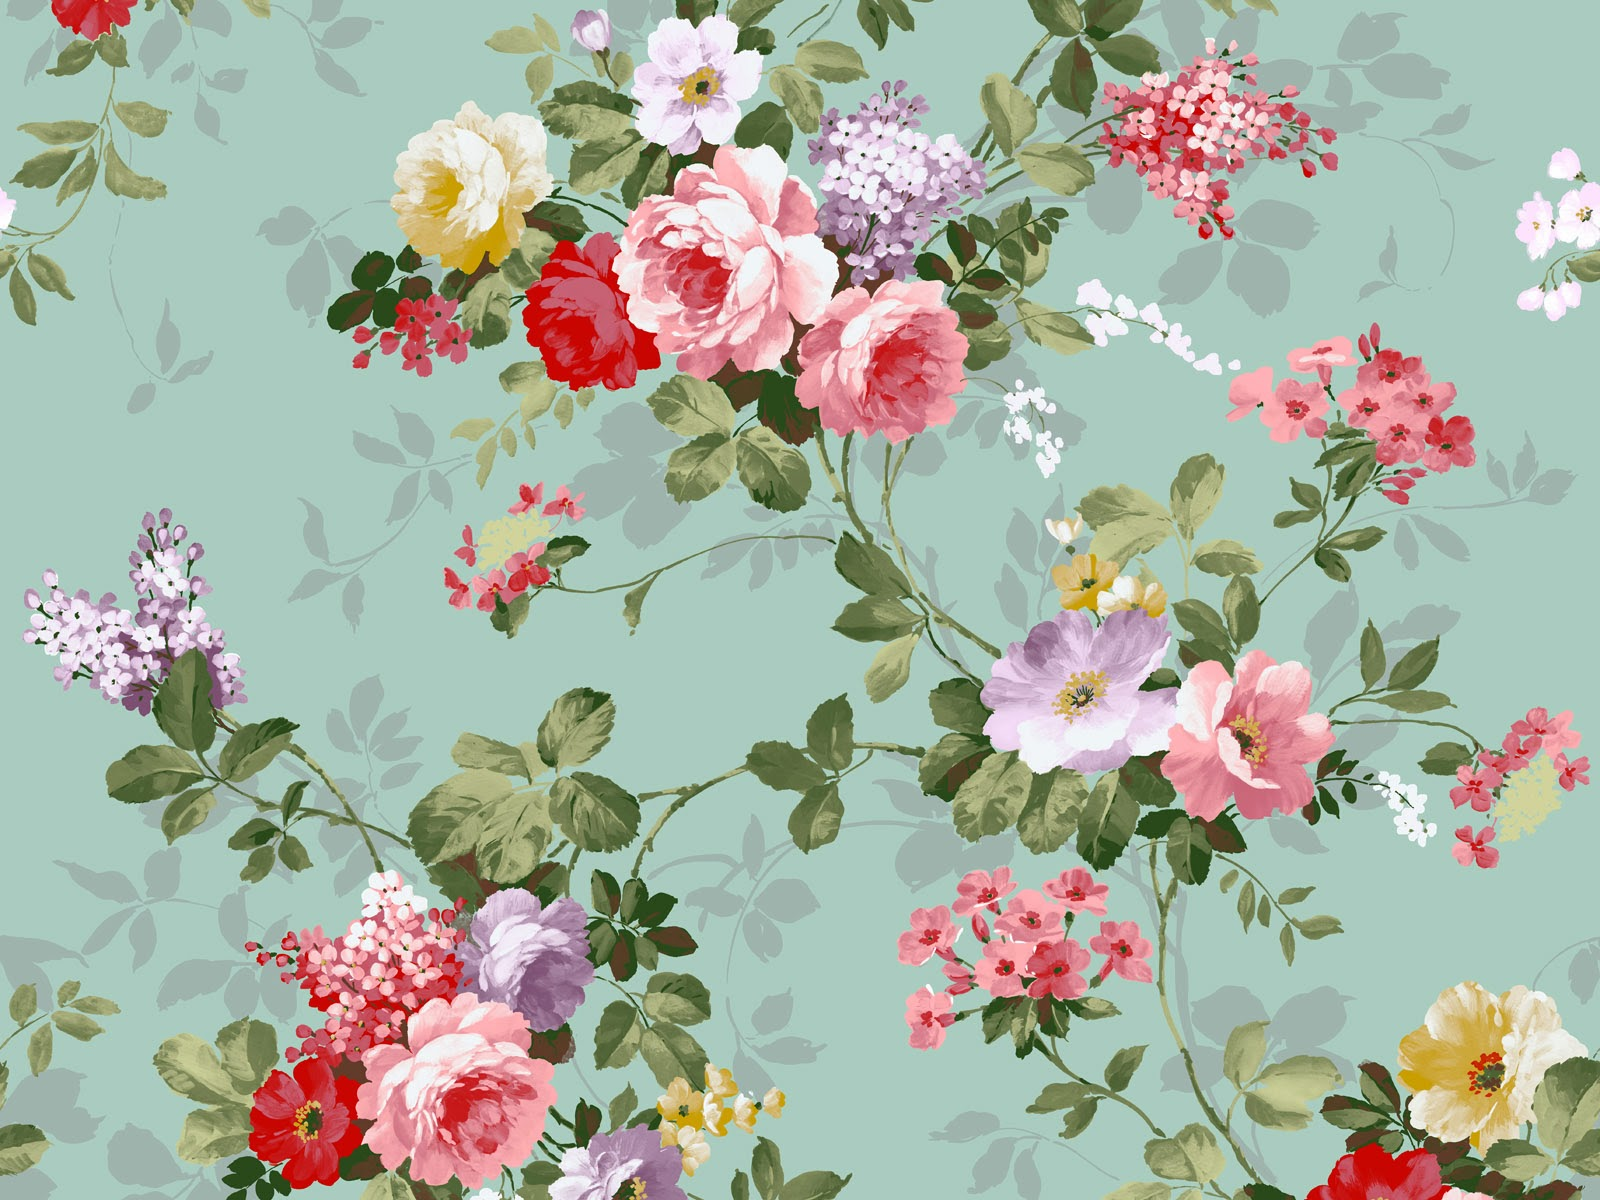 Floral Backgrounds Tumblr Posted By Michelle Johnson